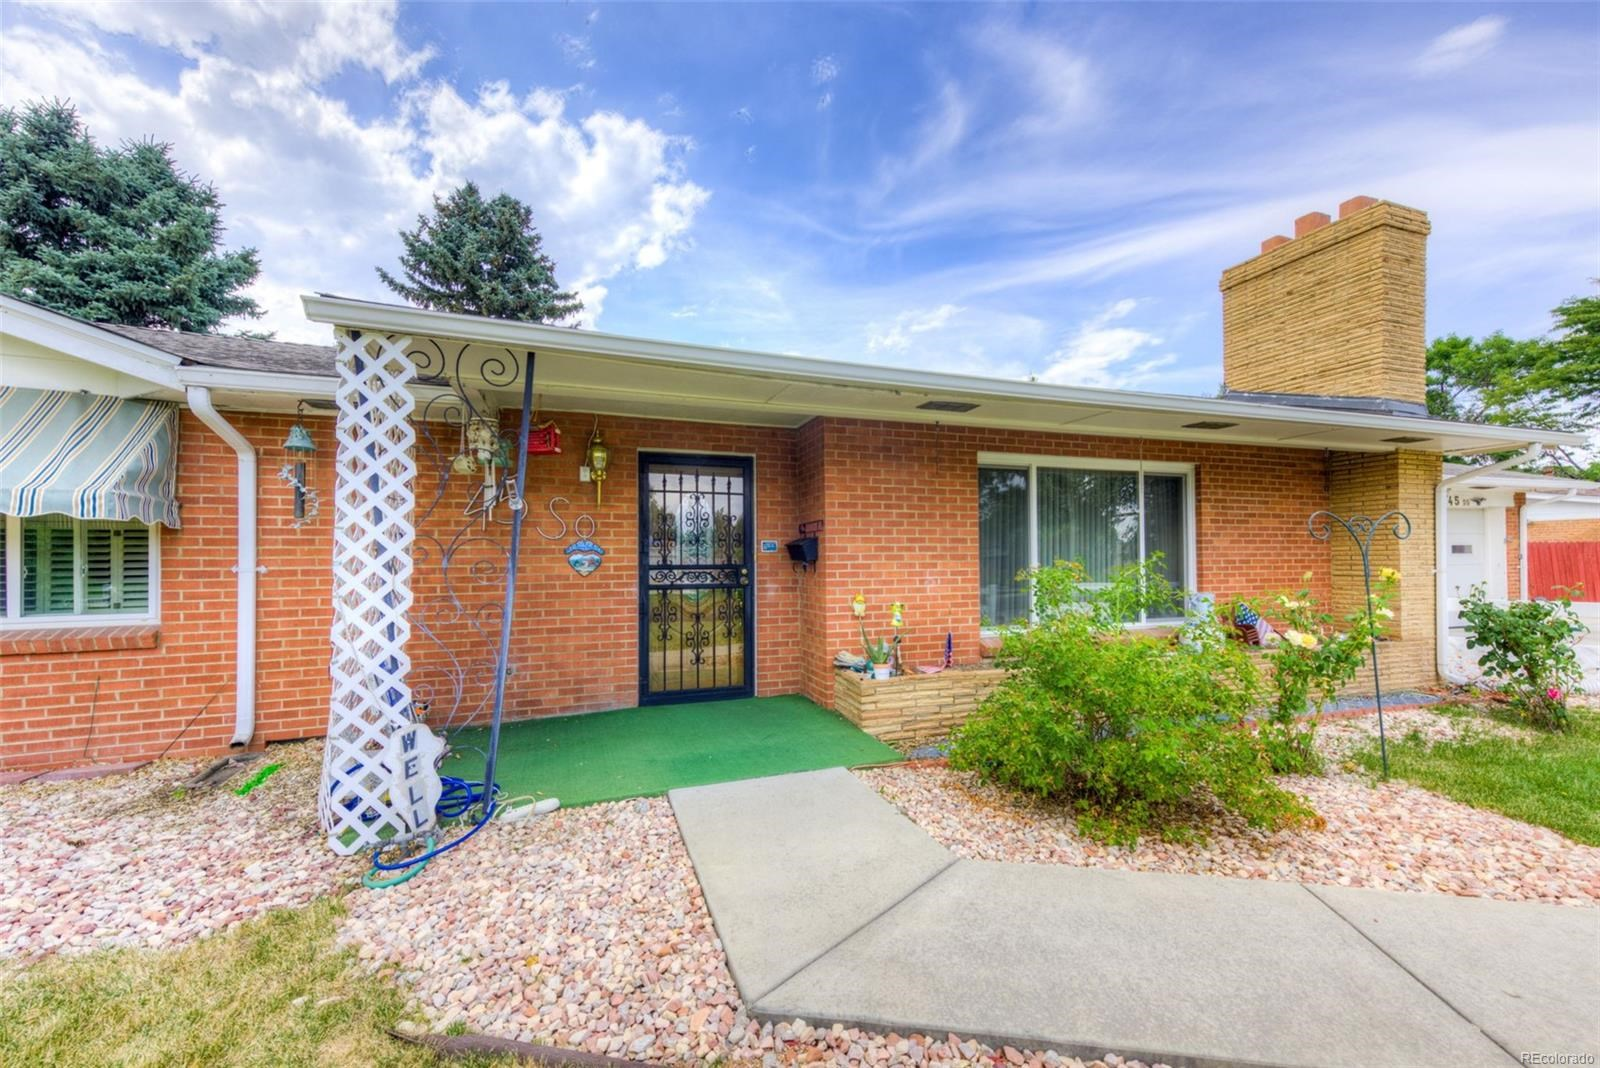 MLS# 5735873 - 4 - 45 S Brentwood Street, Lakewood, CO 80226